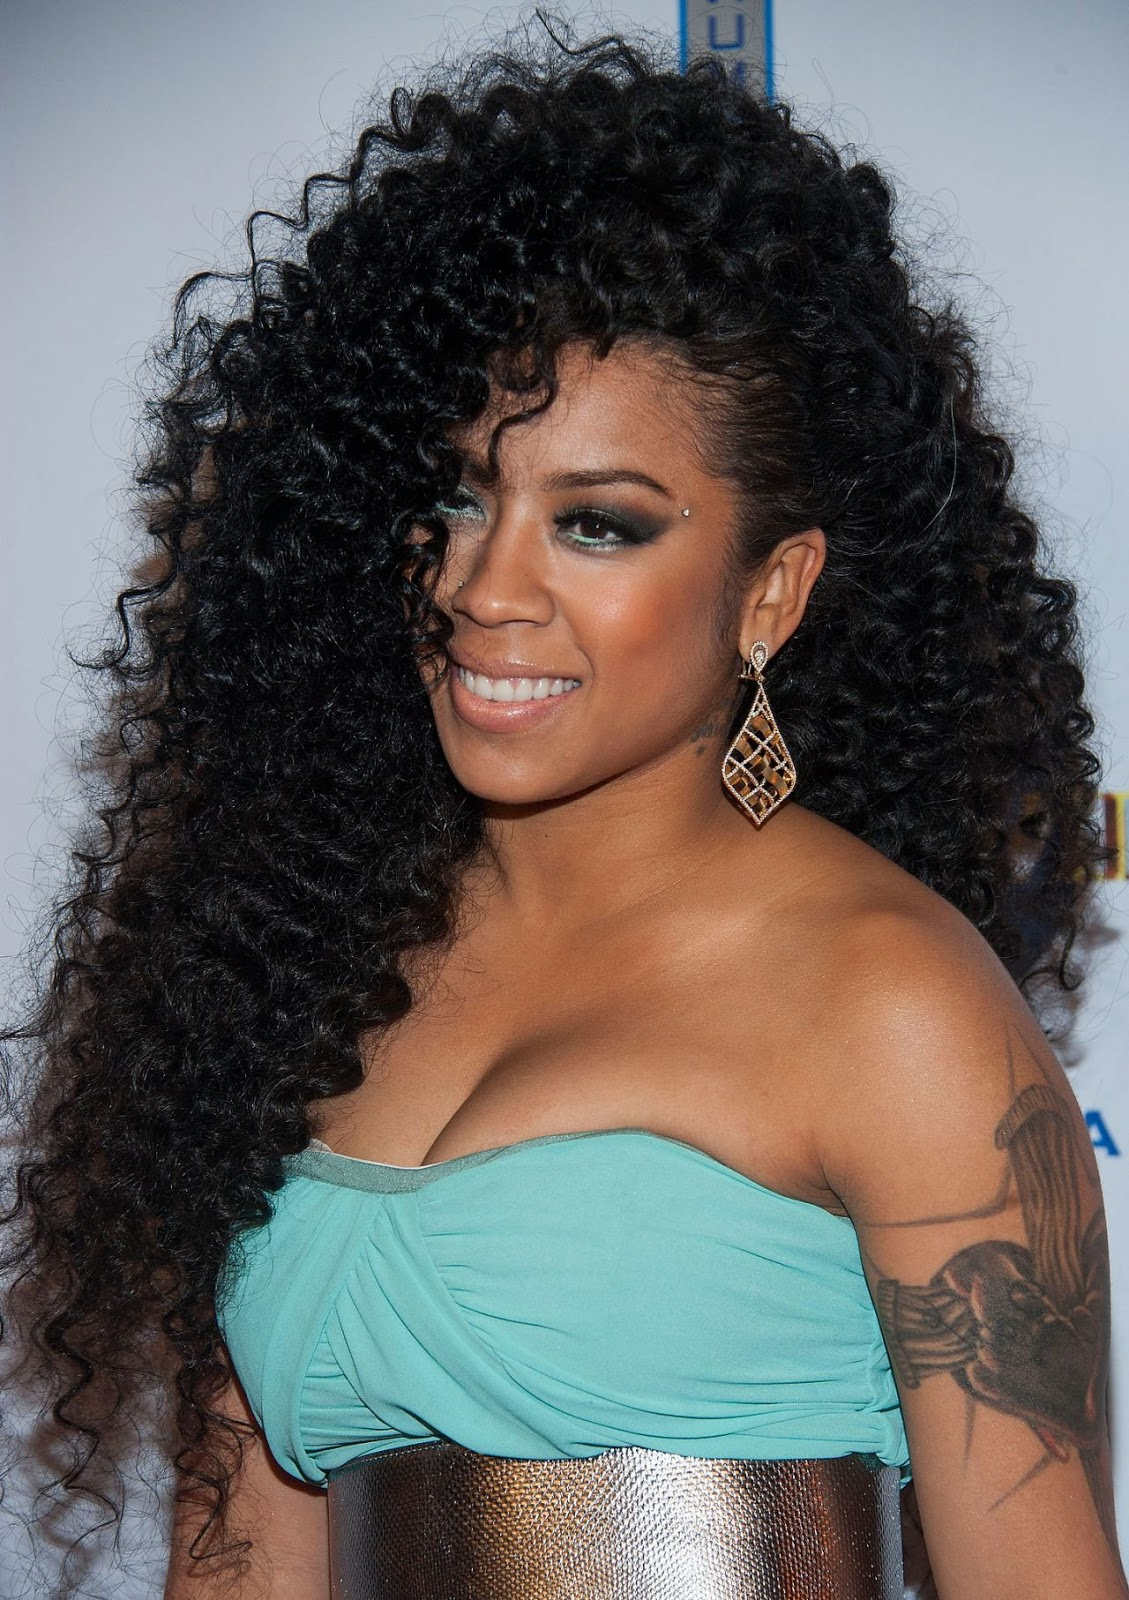 Singer Keyshia Cole Ends Search To Find Her Biological Father